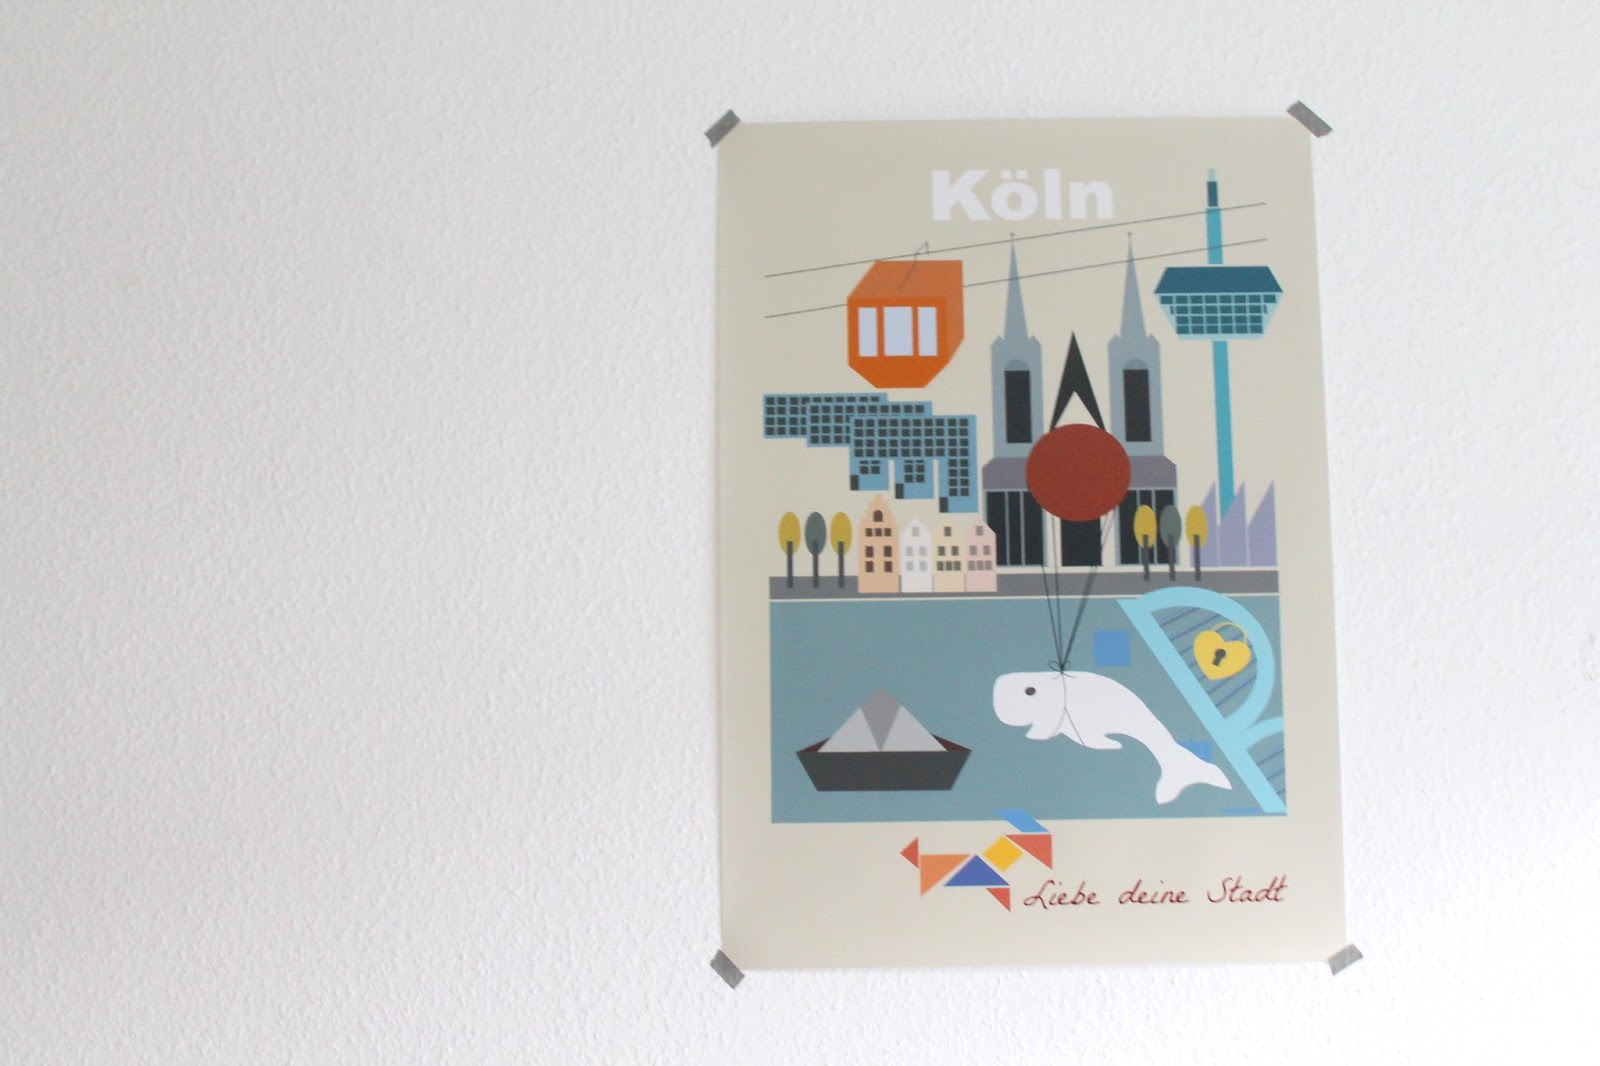 Koeln Illustration